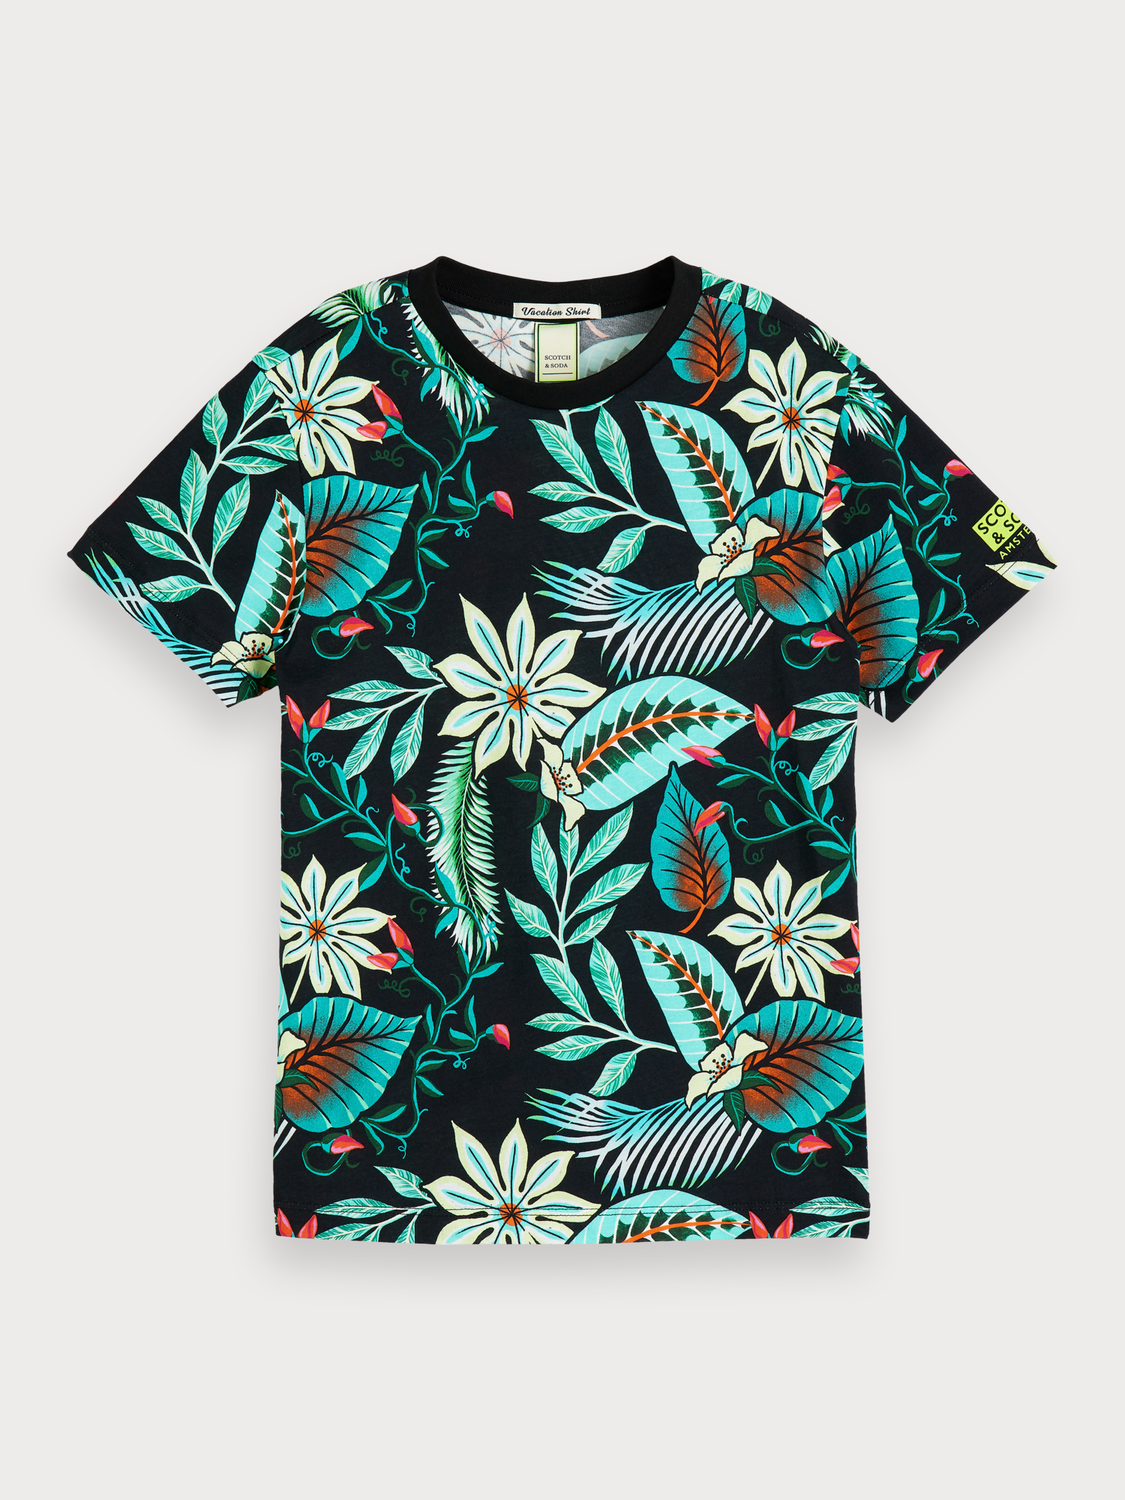 Bambino T-shirt con stampa tropicale